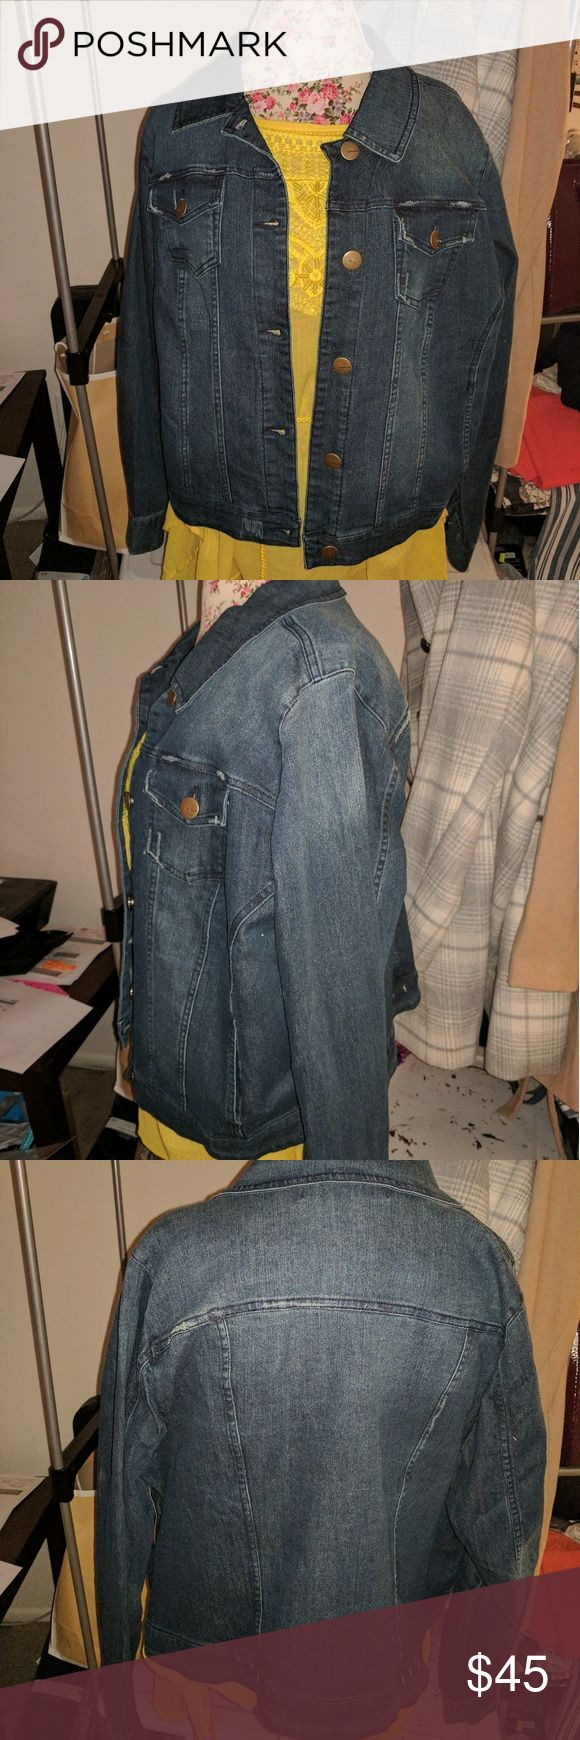 Plus size jean denim jacket NWT Venezia denim jacket from Lane Bryant.  Distressed on pockets and fading.  Every day essential can dress up or down an outfit. Venezia Jackets & Coats Jean Jackets